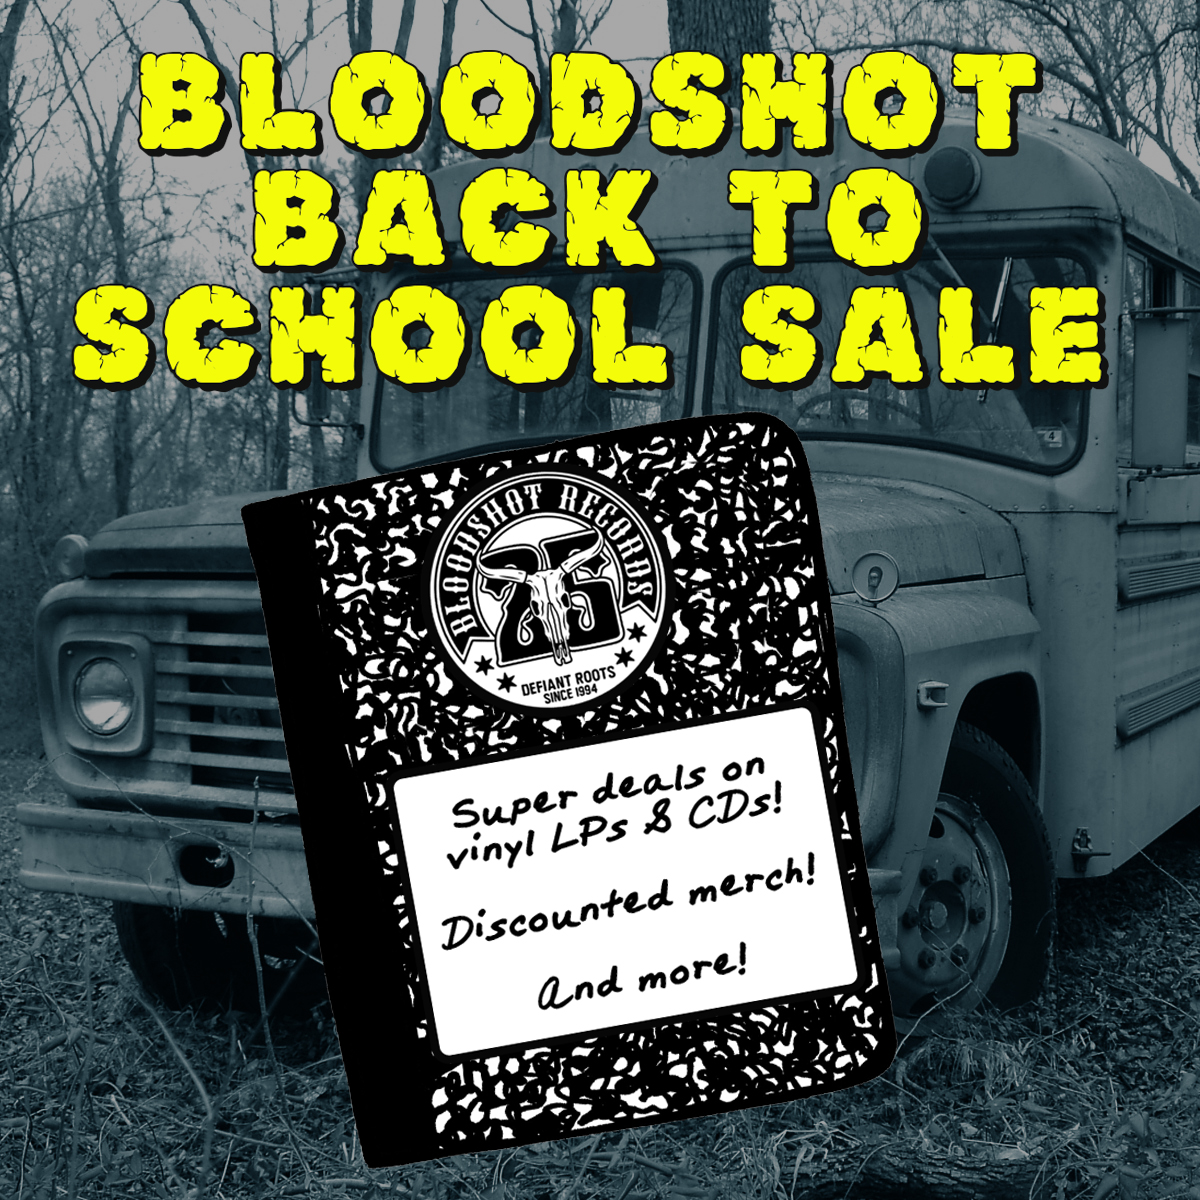 Bloodshot Back to School Sale